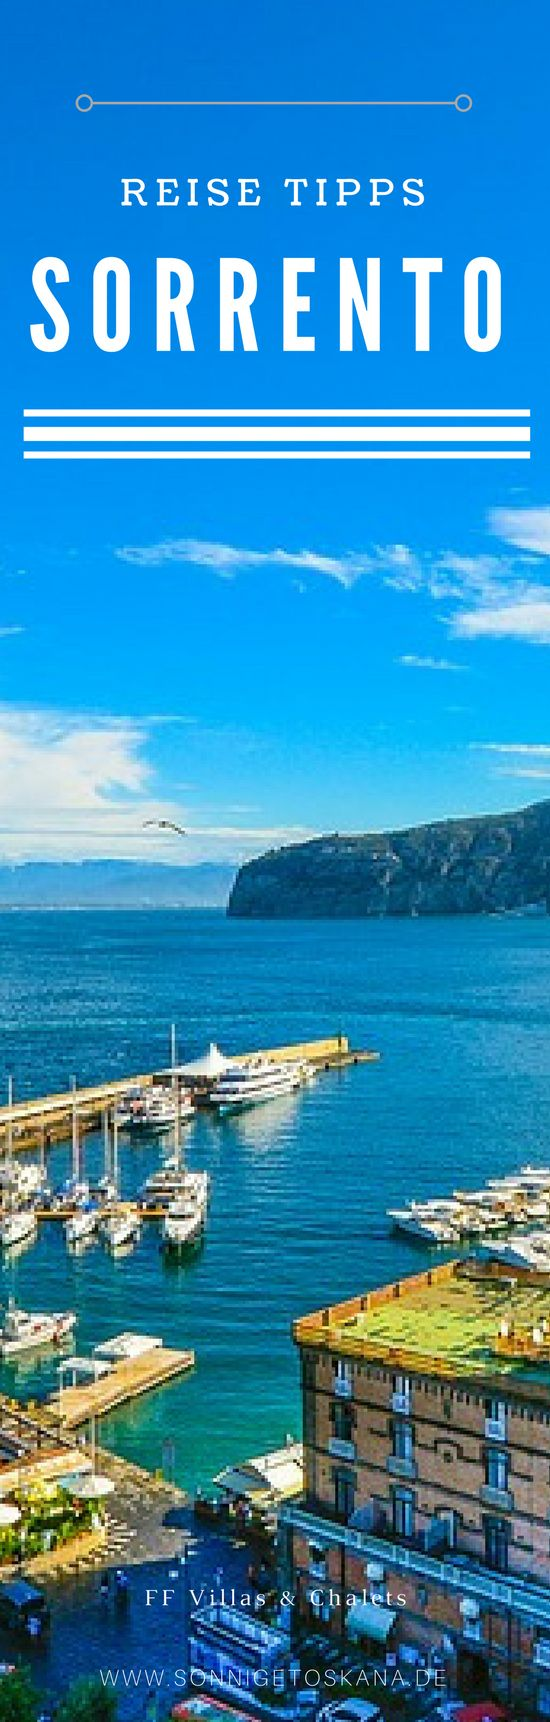 Where to stay in Sorrento? For Families and Groups of Friends #travel #sorrento #italy #italien #reisen #ferienvilla #ferienhaus #sorrentovillas